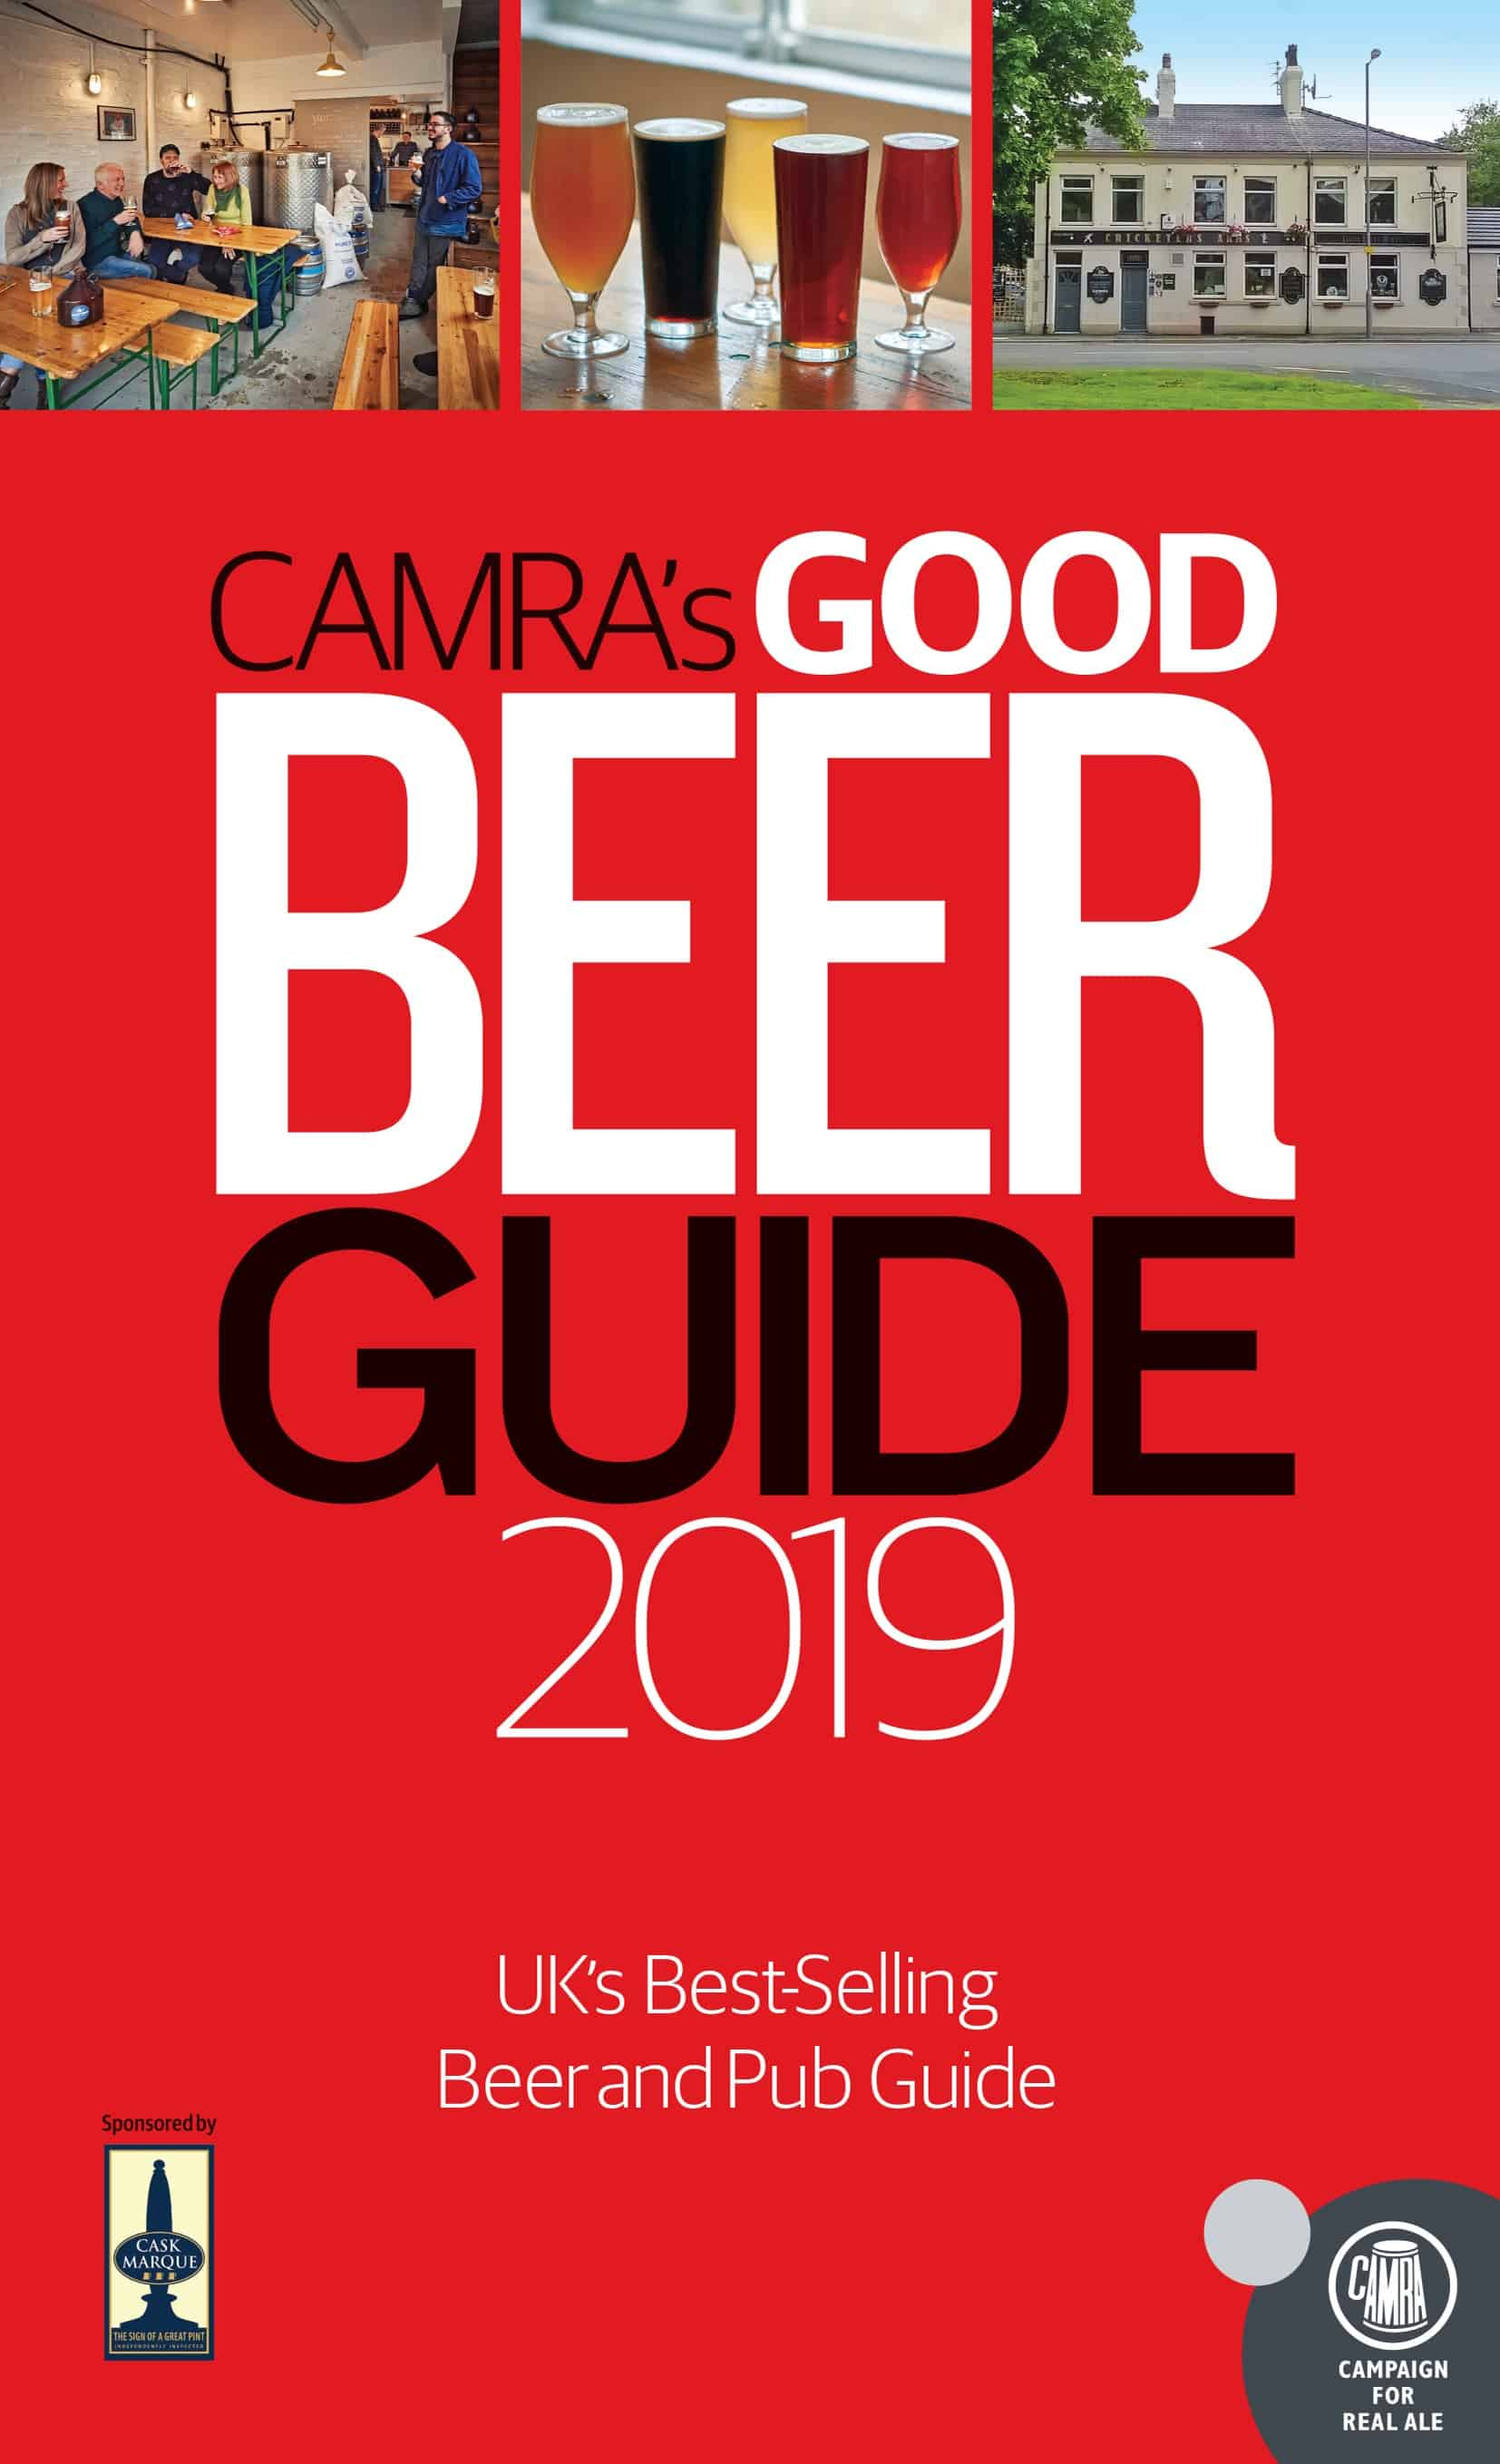 The Good Beer Guide 2019